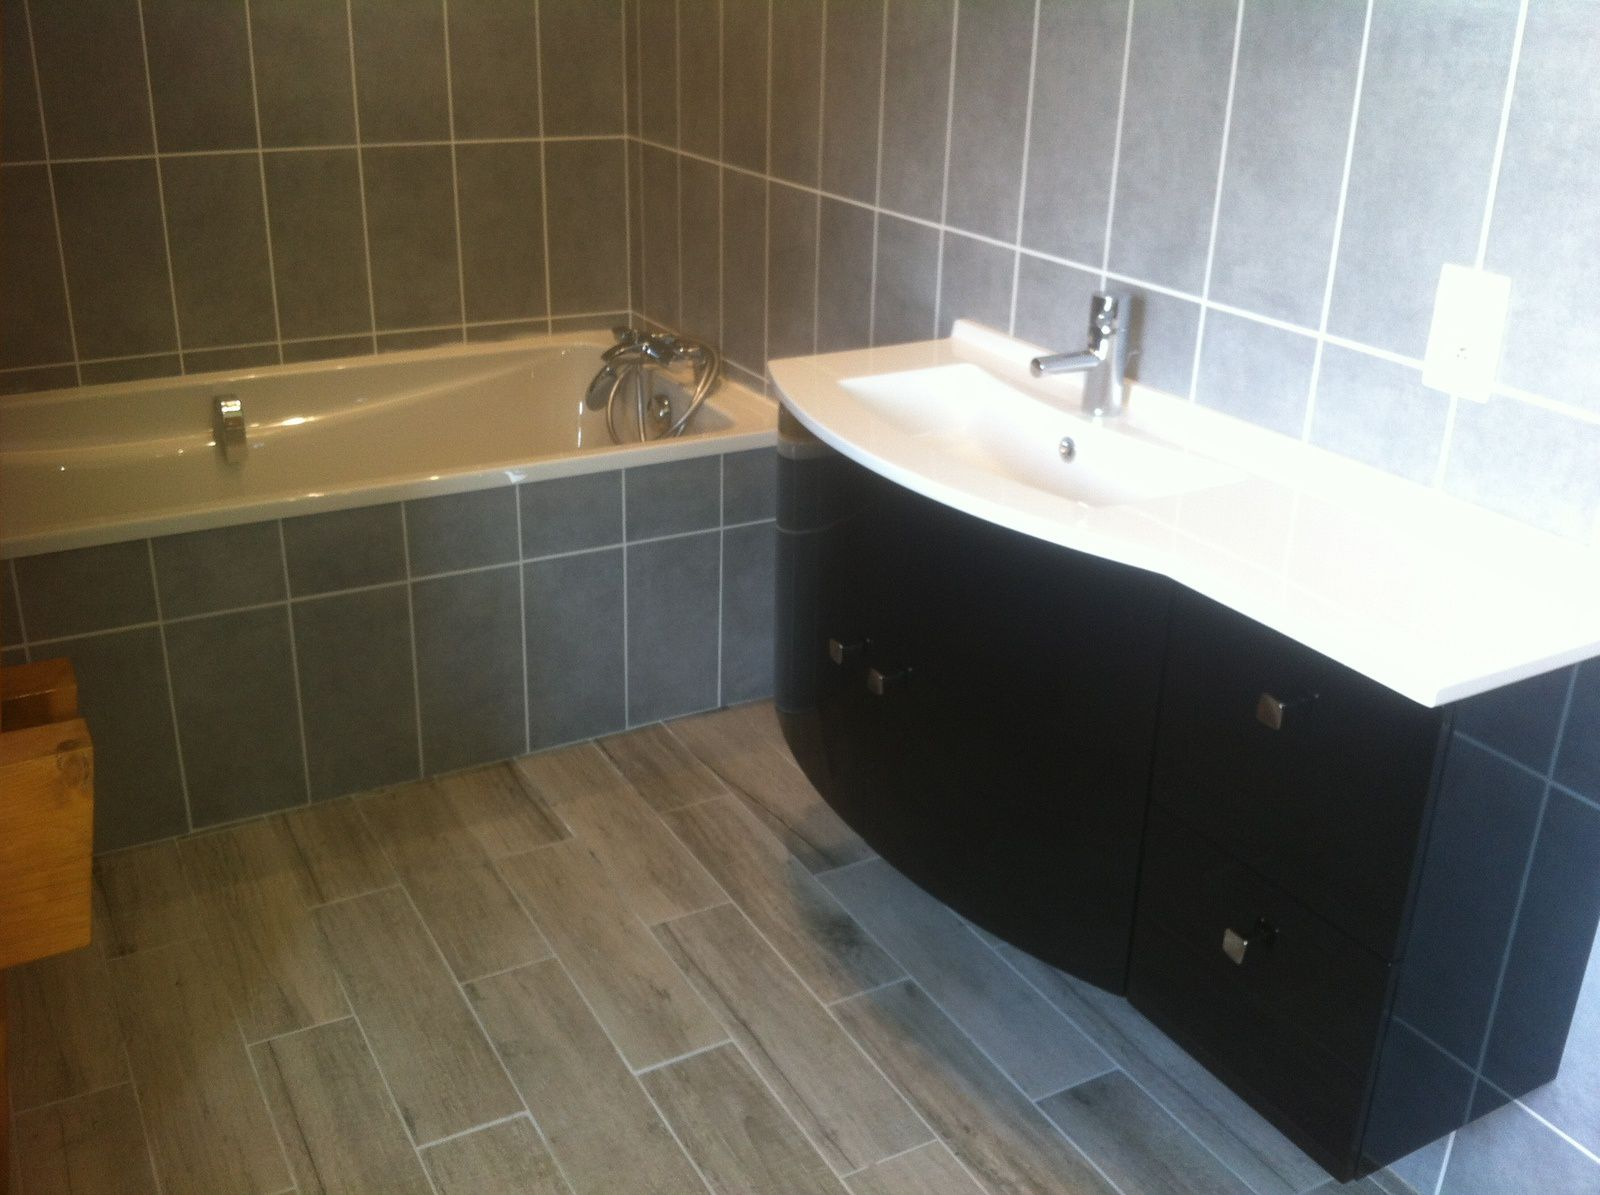 Cr ation d 39 une salle de bain renov batiment for Creation salle de bain